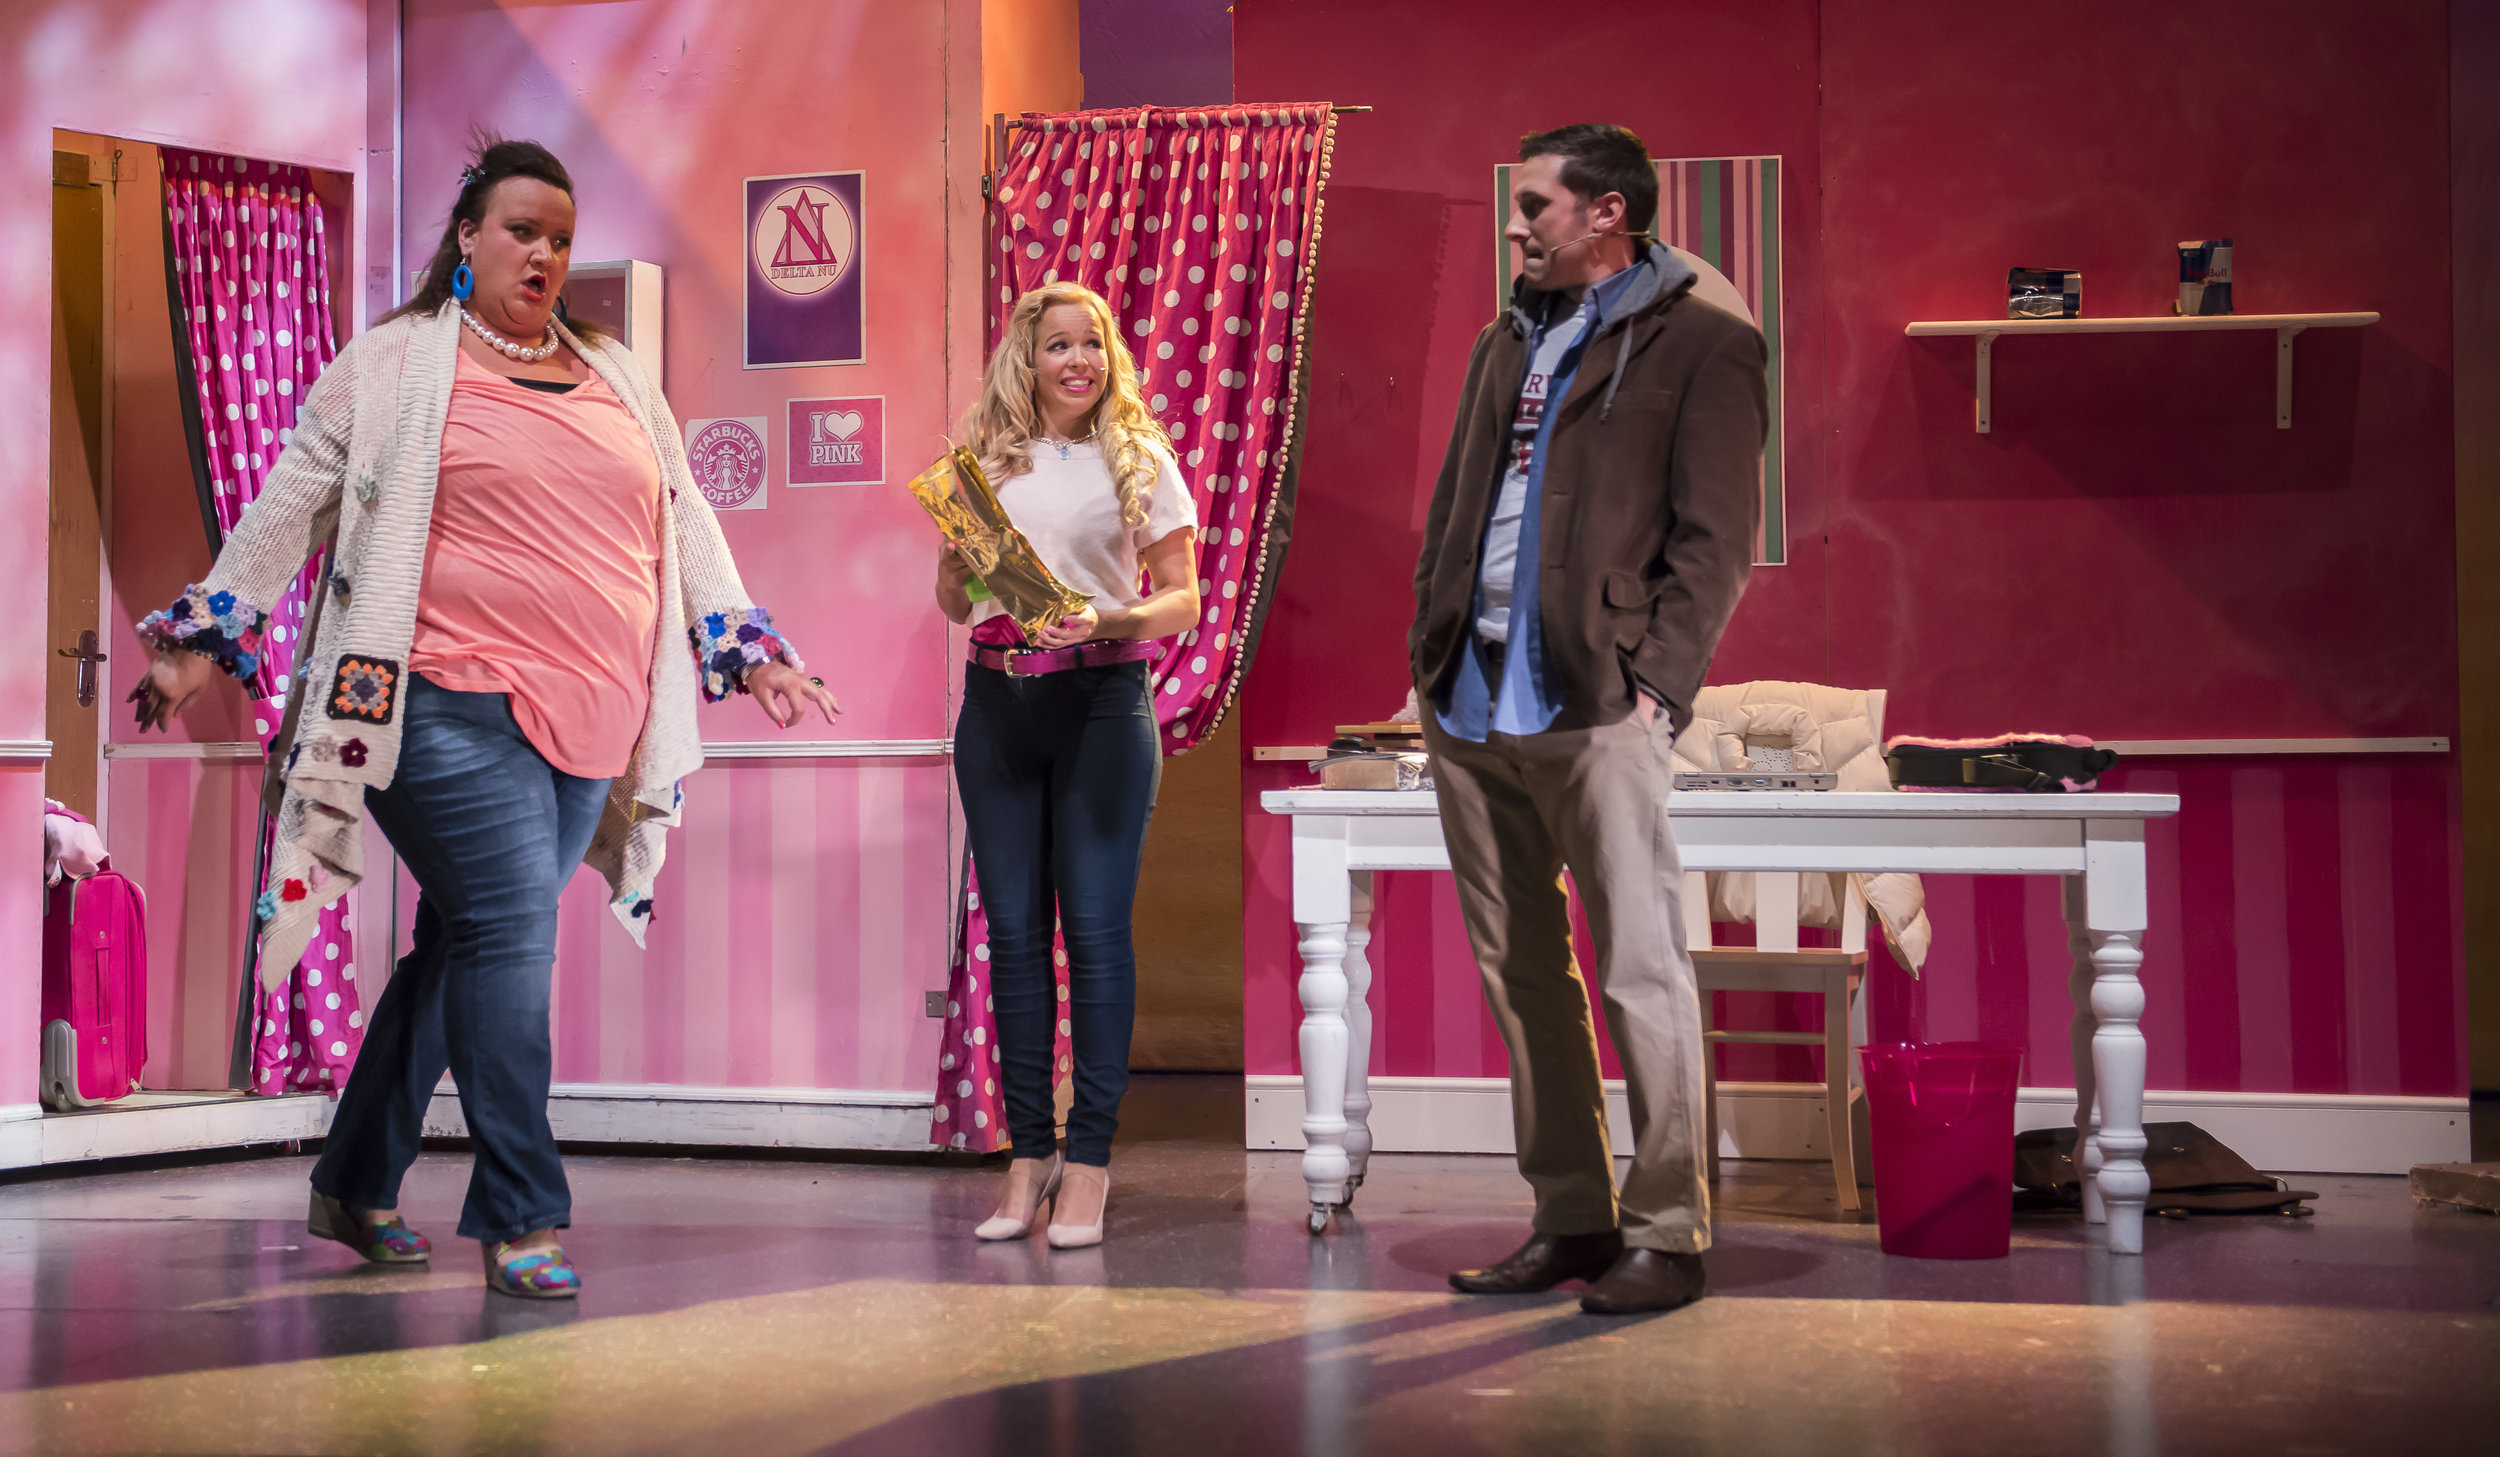 Sally Manning as Paulette, Laura Newborough as Elle and David Izzo as Emmett